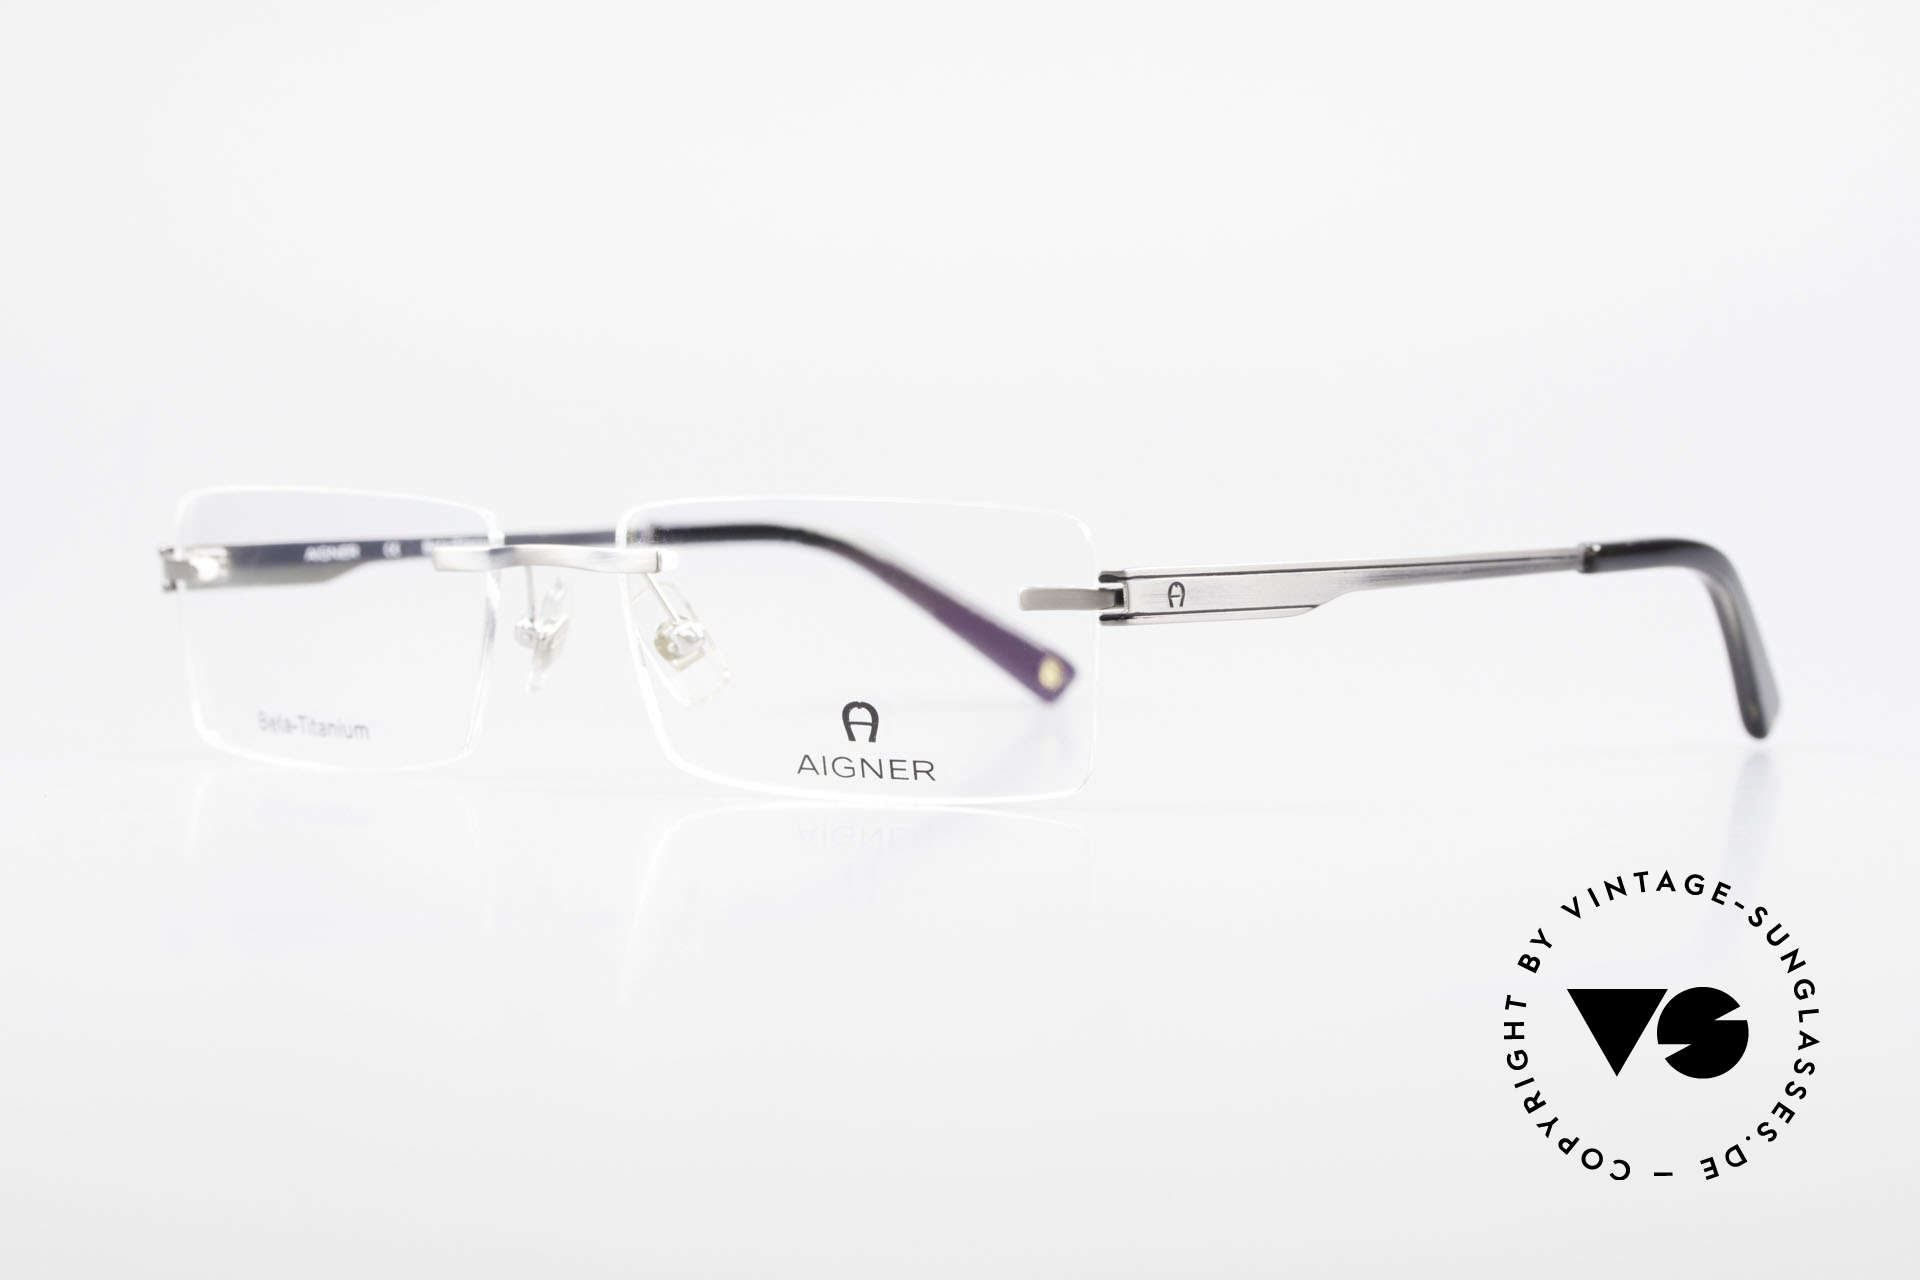 Aigner EA1023 Rimless Vintage Glasses Titan, top-notch quality and very pleasant to wear; lightweight, Made for Men